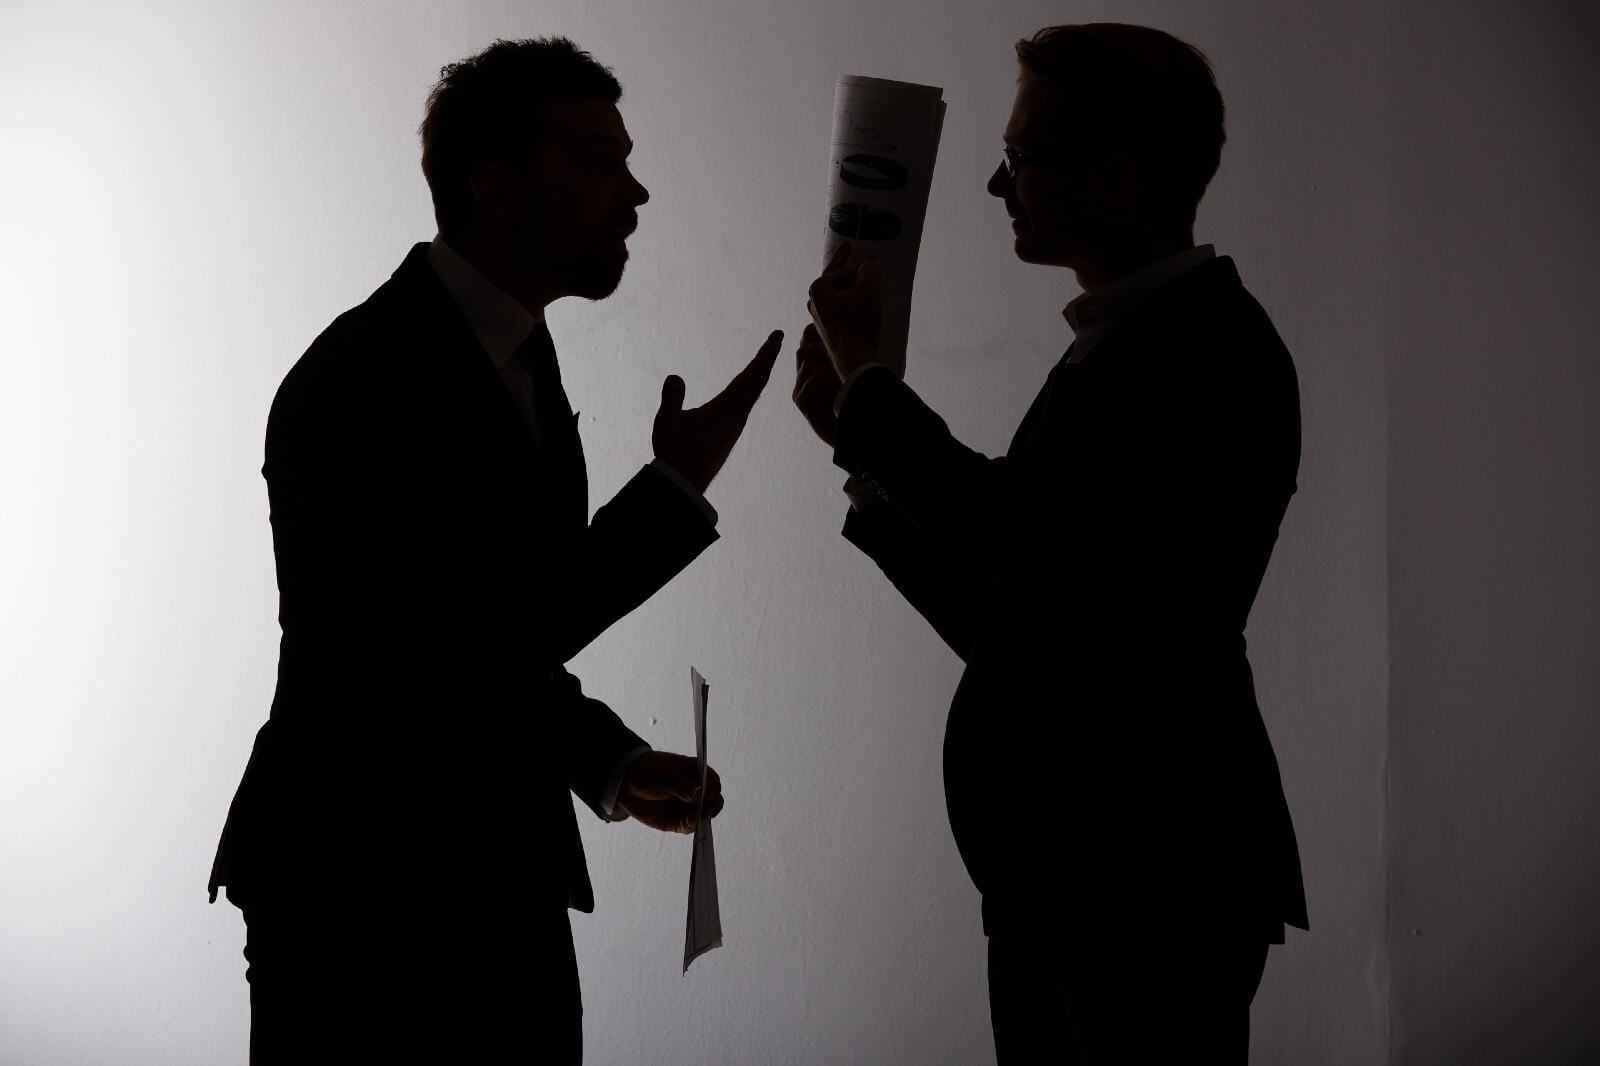 Two men in shadow, one arguing, the other hiding behind a file folder